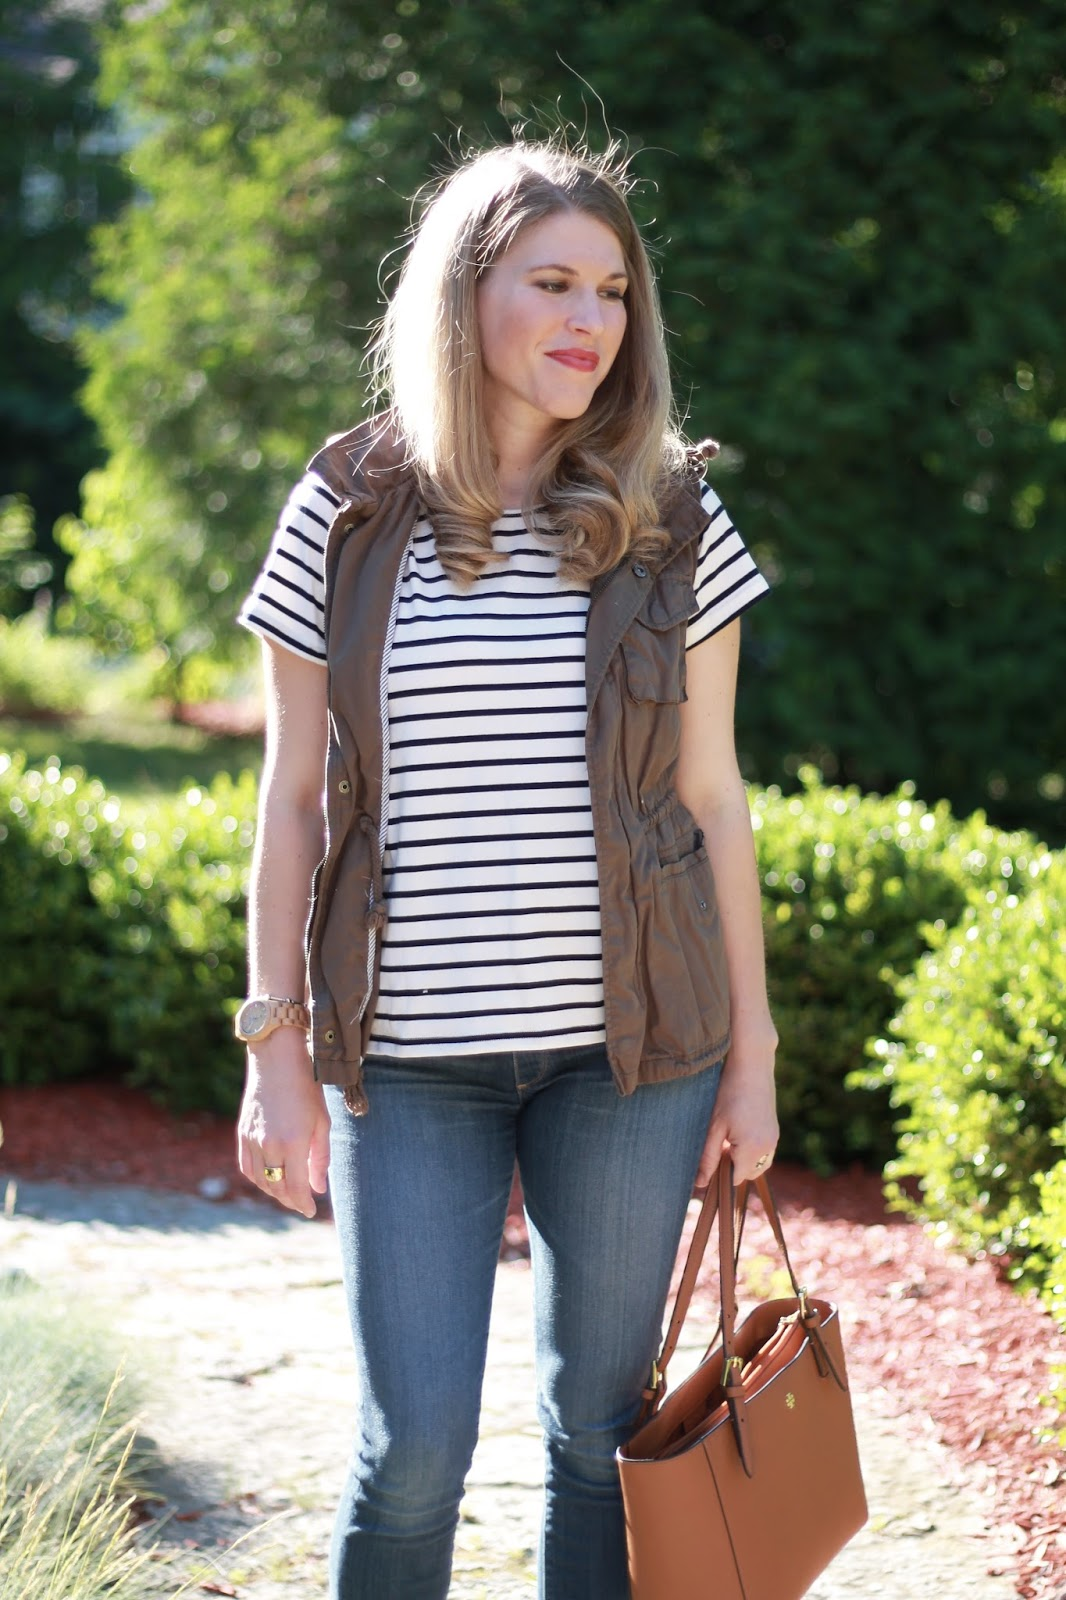 striped tee, utility vest, AG maternity jeans, Steve madden wedge sandals, Tory Burch tote, second trimester summer maternity outfit